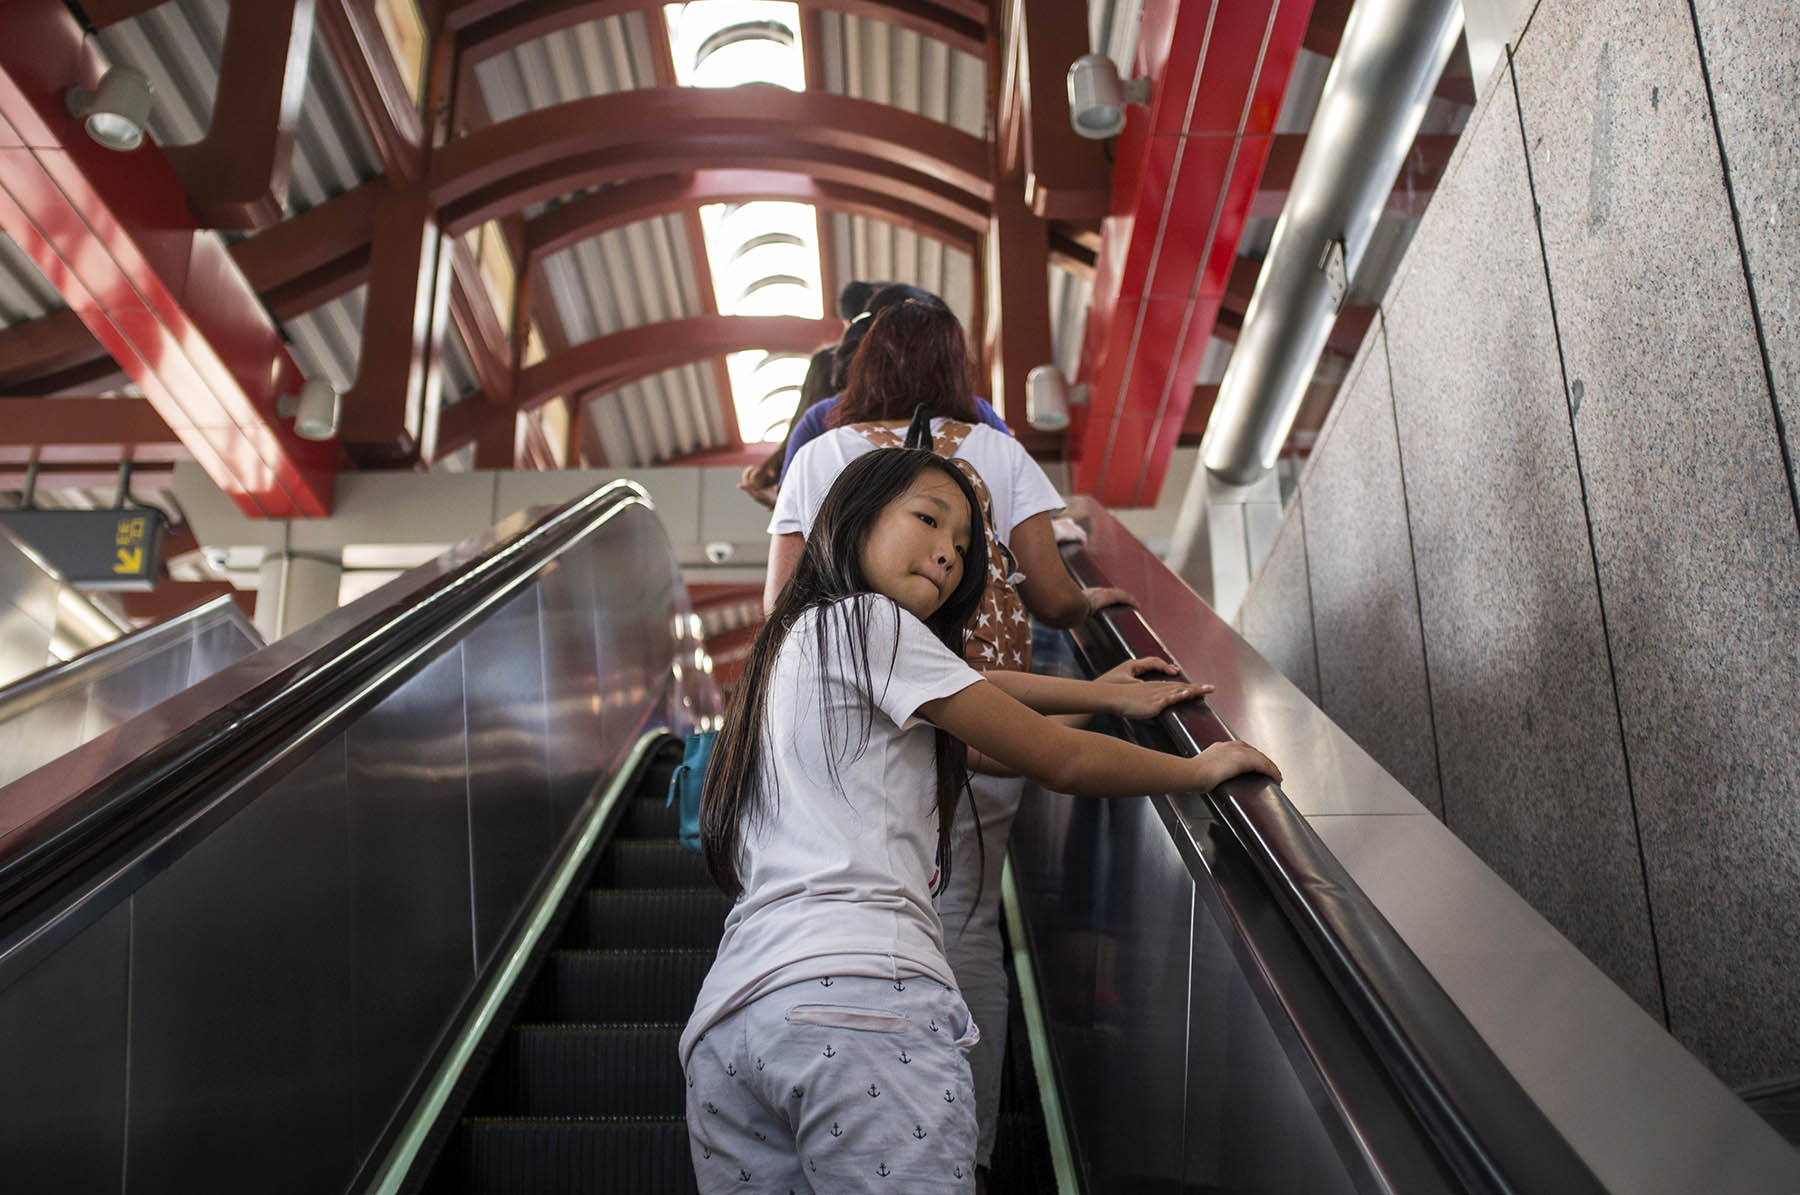 """There is so much clothing business in Taipei, that even metro women's voice on stops says """"doors clothing"""". Girl on the escalator."""